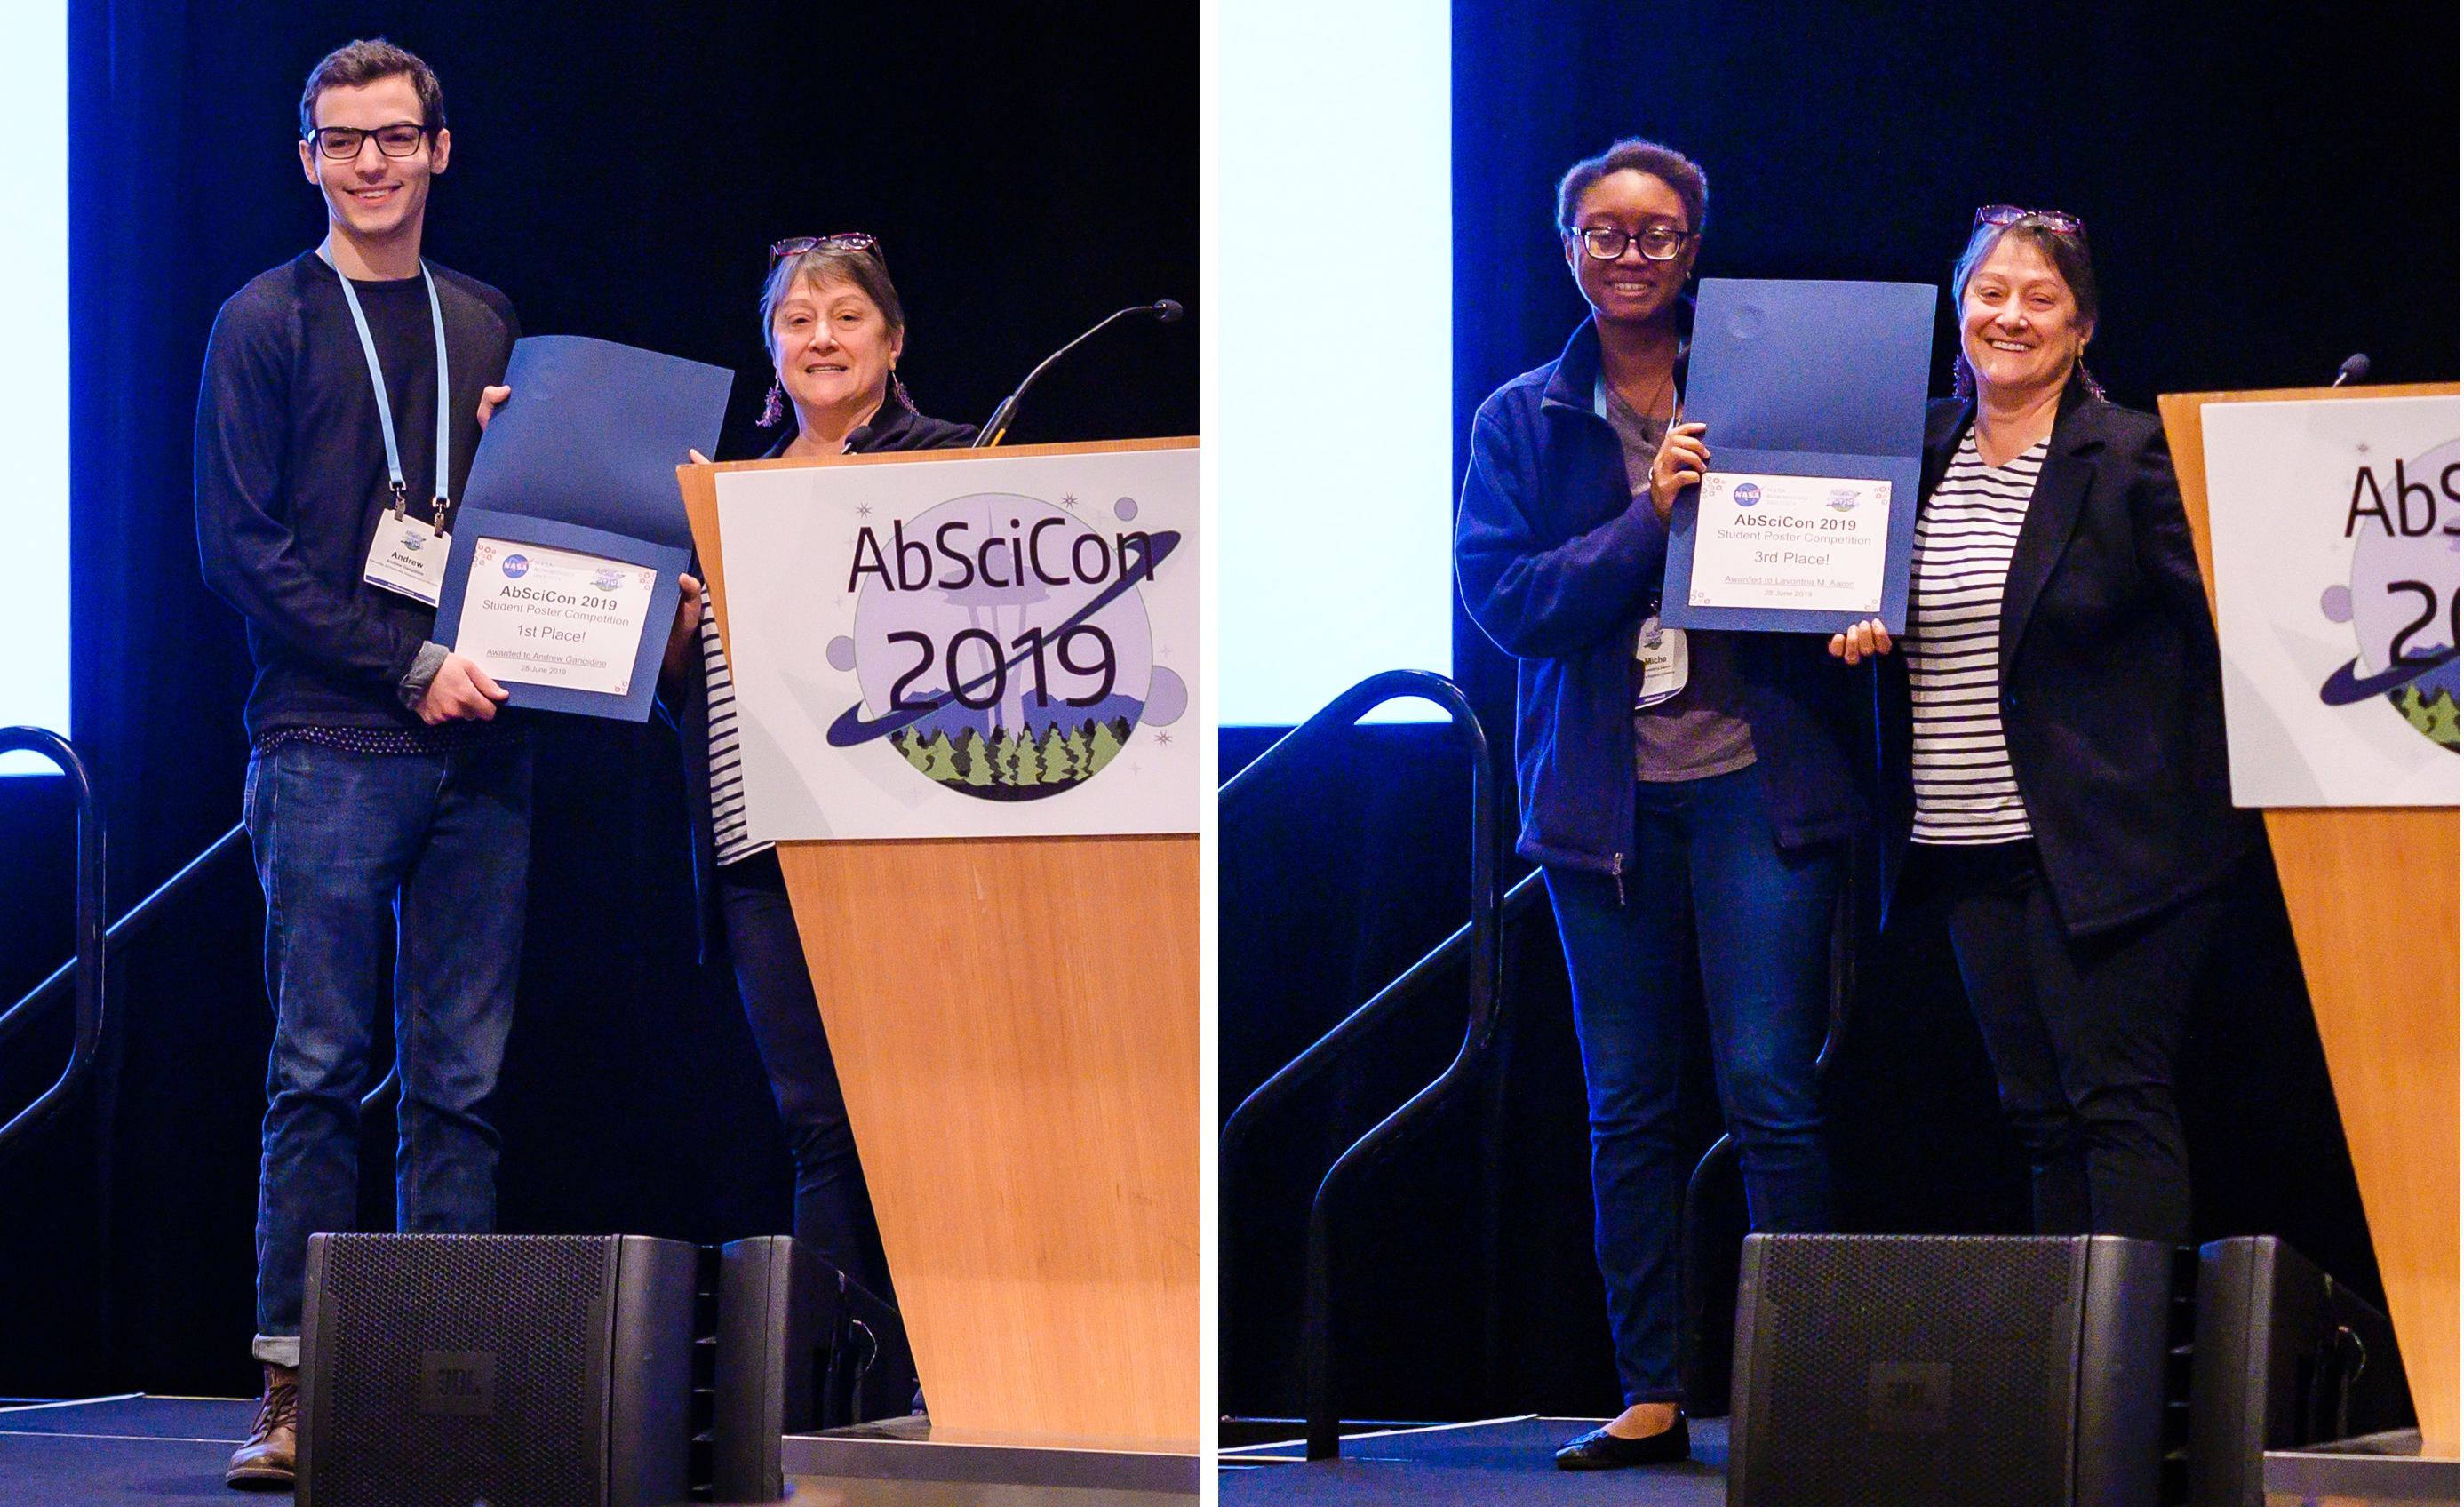 First place winner, Andrew Gangidine (left), and third place winner, Lavontria Aaron (right), stand with NASA Astrobiology Program Director, Mary Voytek, as they receive the AbSciCon 2019 student poster competition awards. Credit: Michael L. Wong Image credit: None